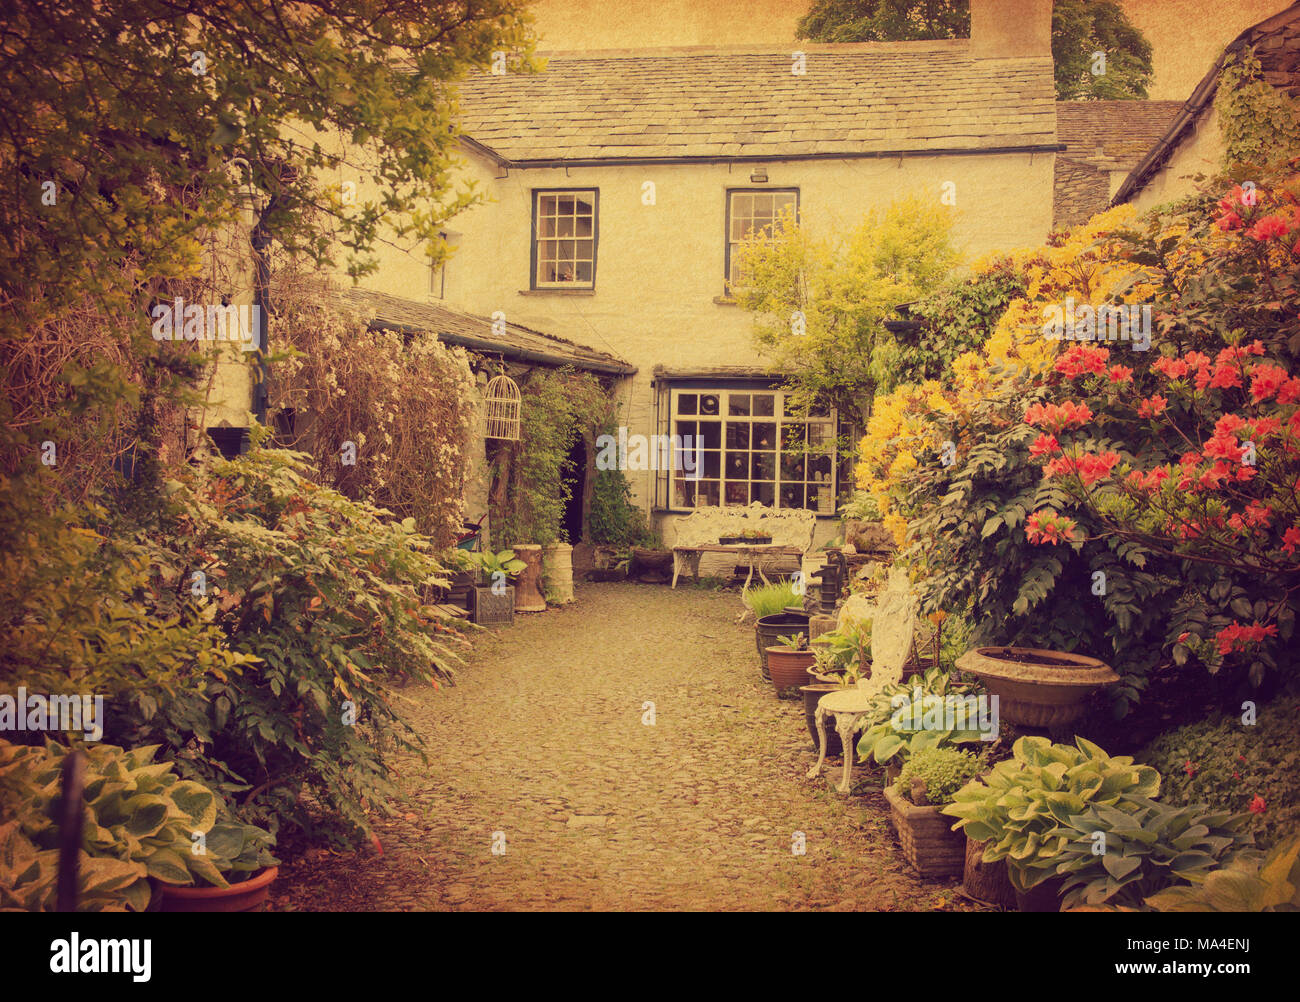 Garden at the front of old house, Lake District, Cumbria, UK. Photo ...